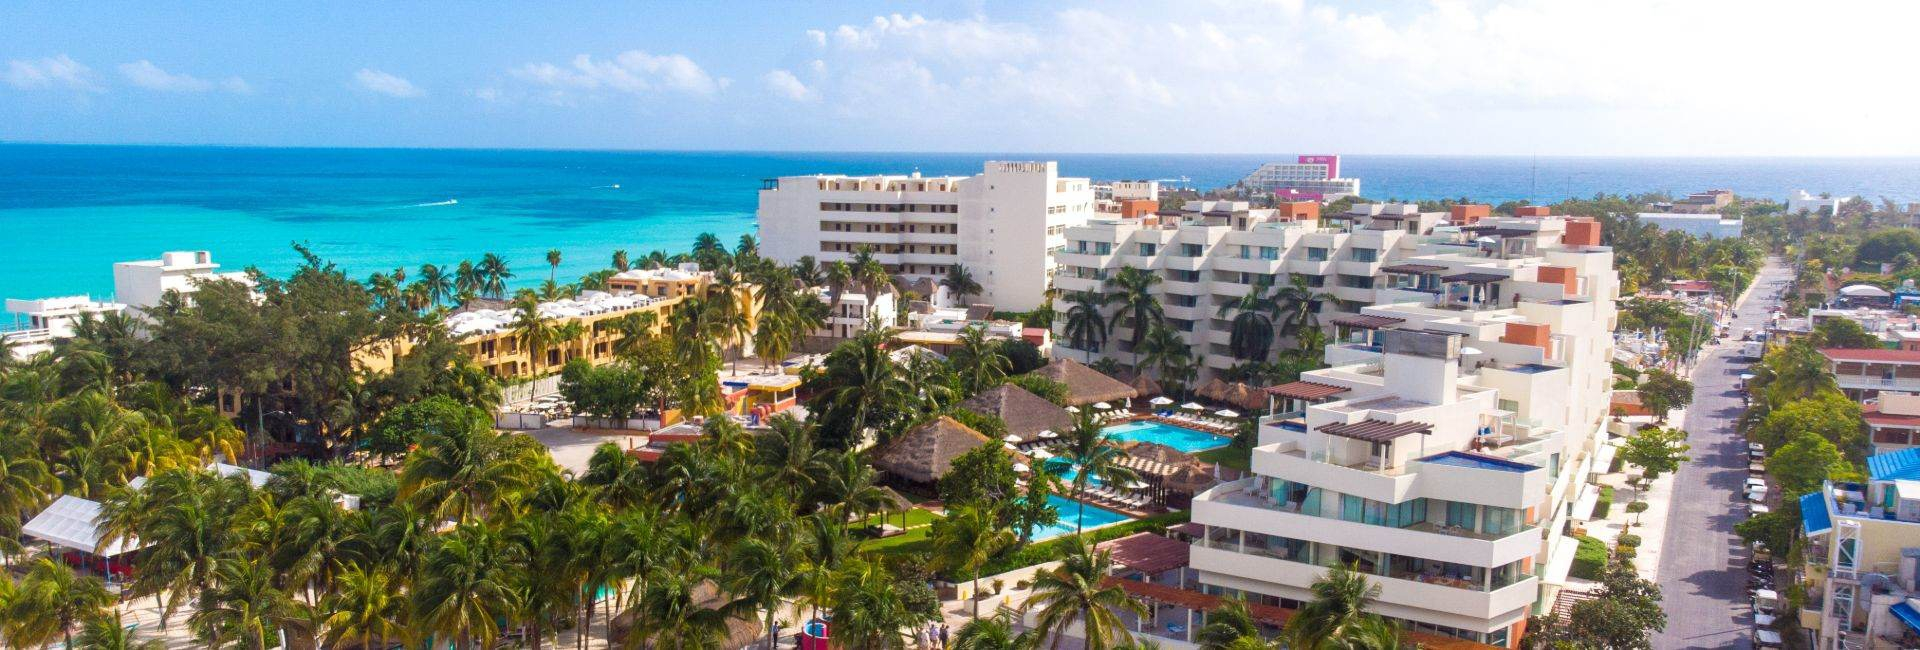 Privilege Aluxes - Isla Mujeres - Panoramic View